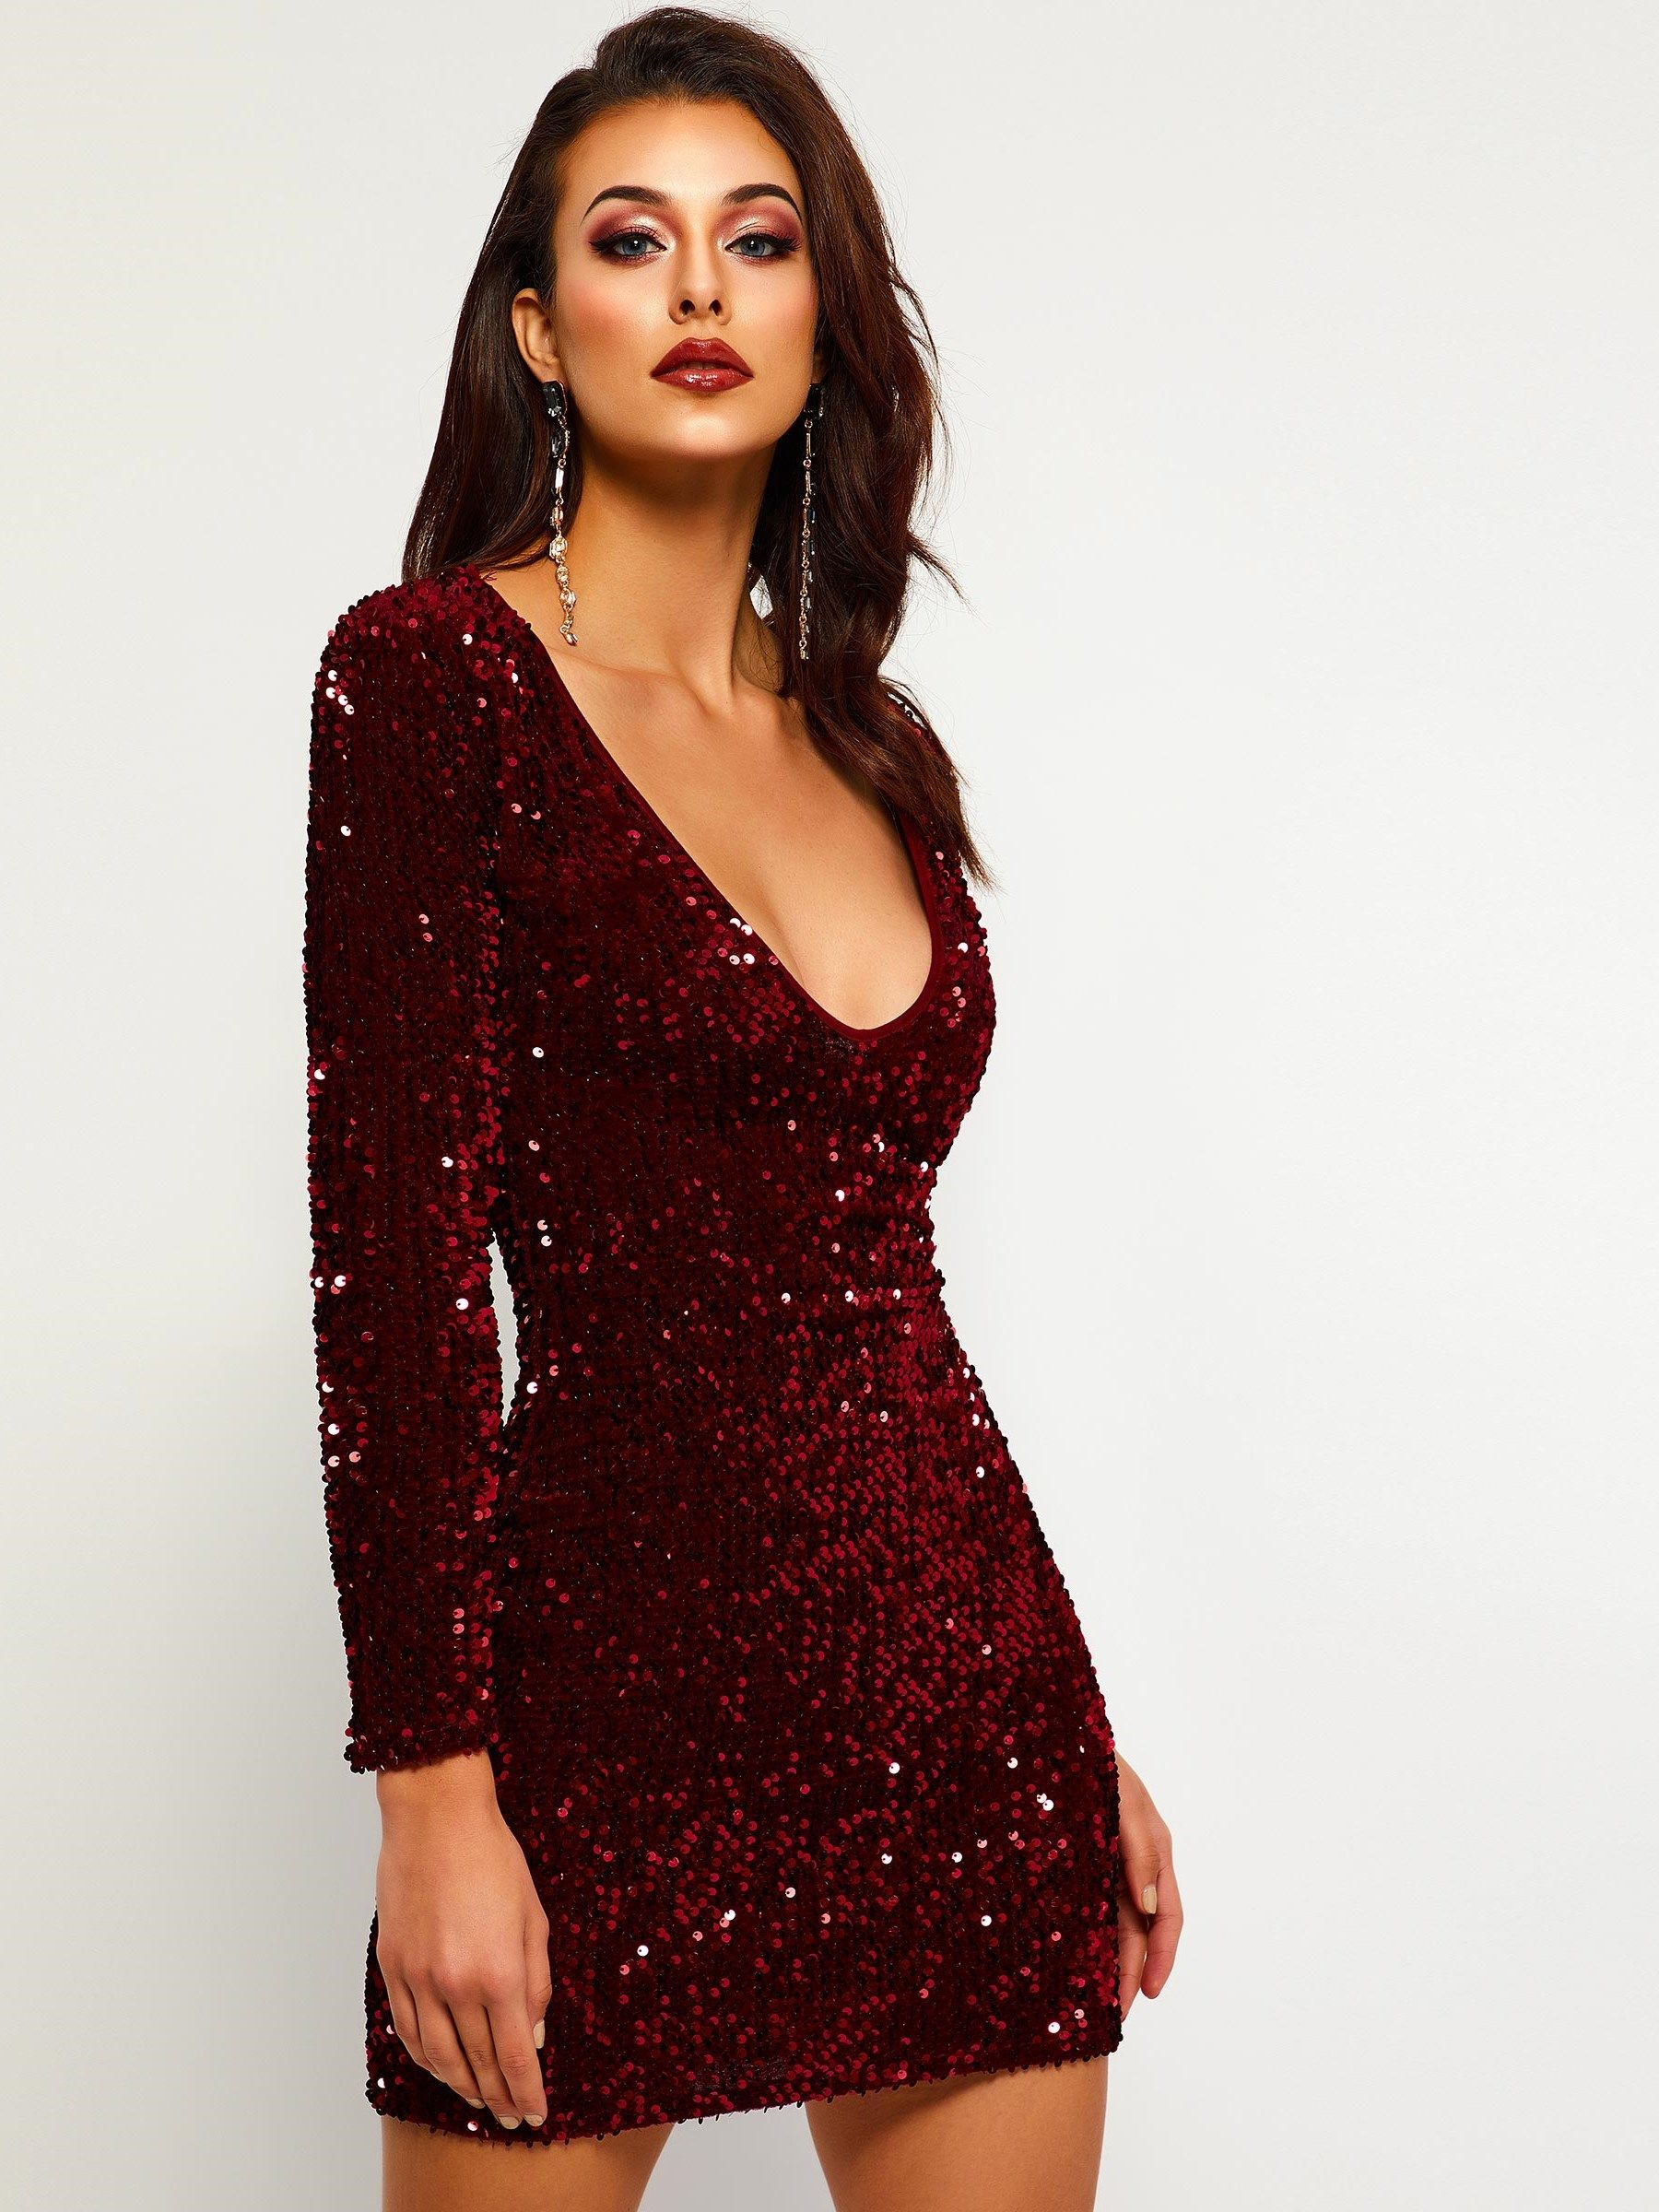 Sequins V-Neck Long Sleeve Women s Party Dress in 2019  f435bb7c38c0